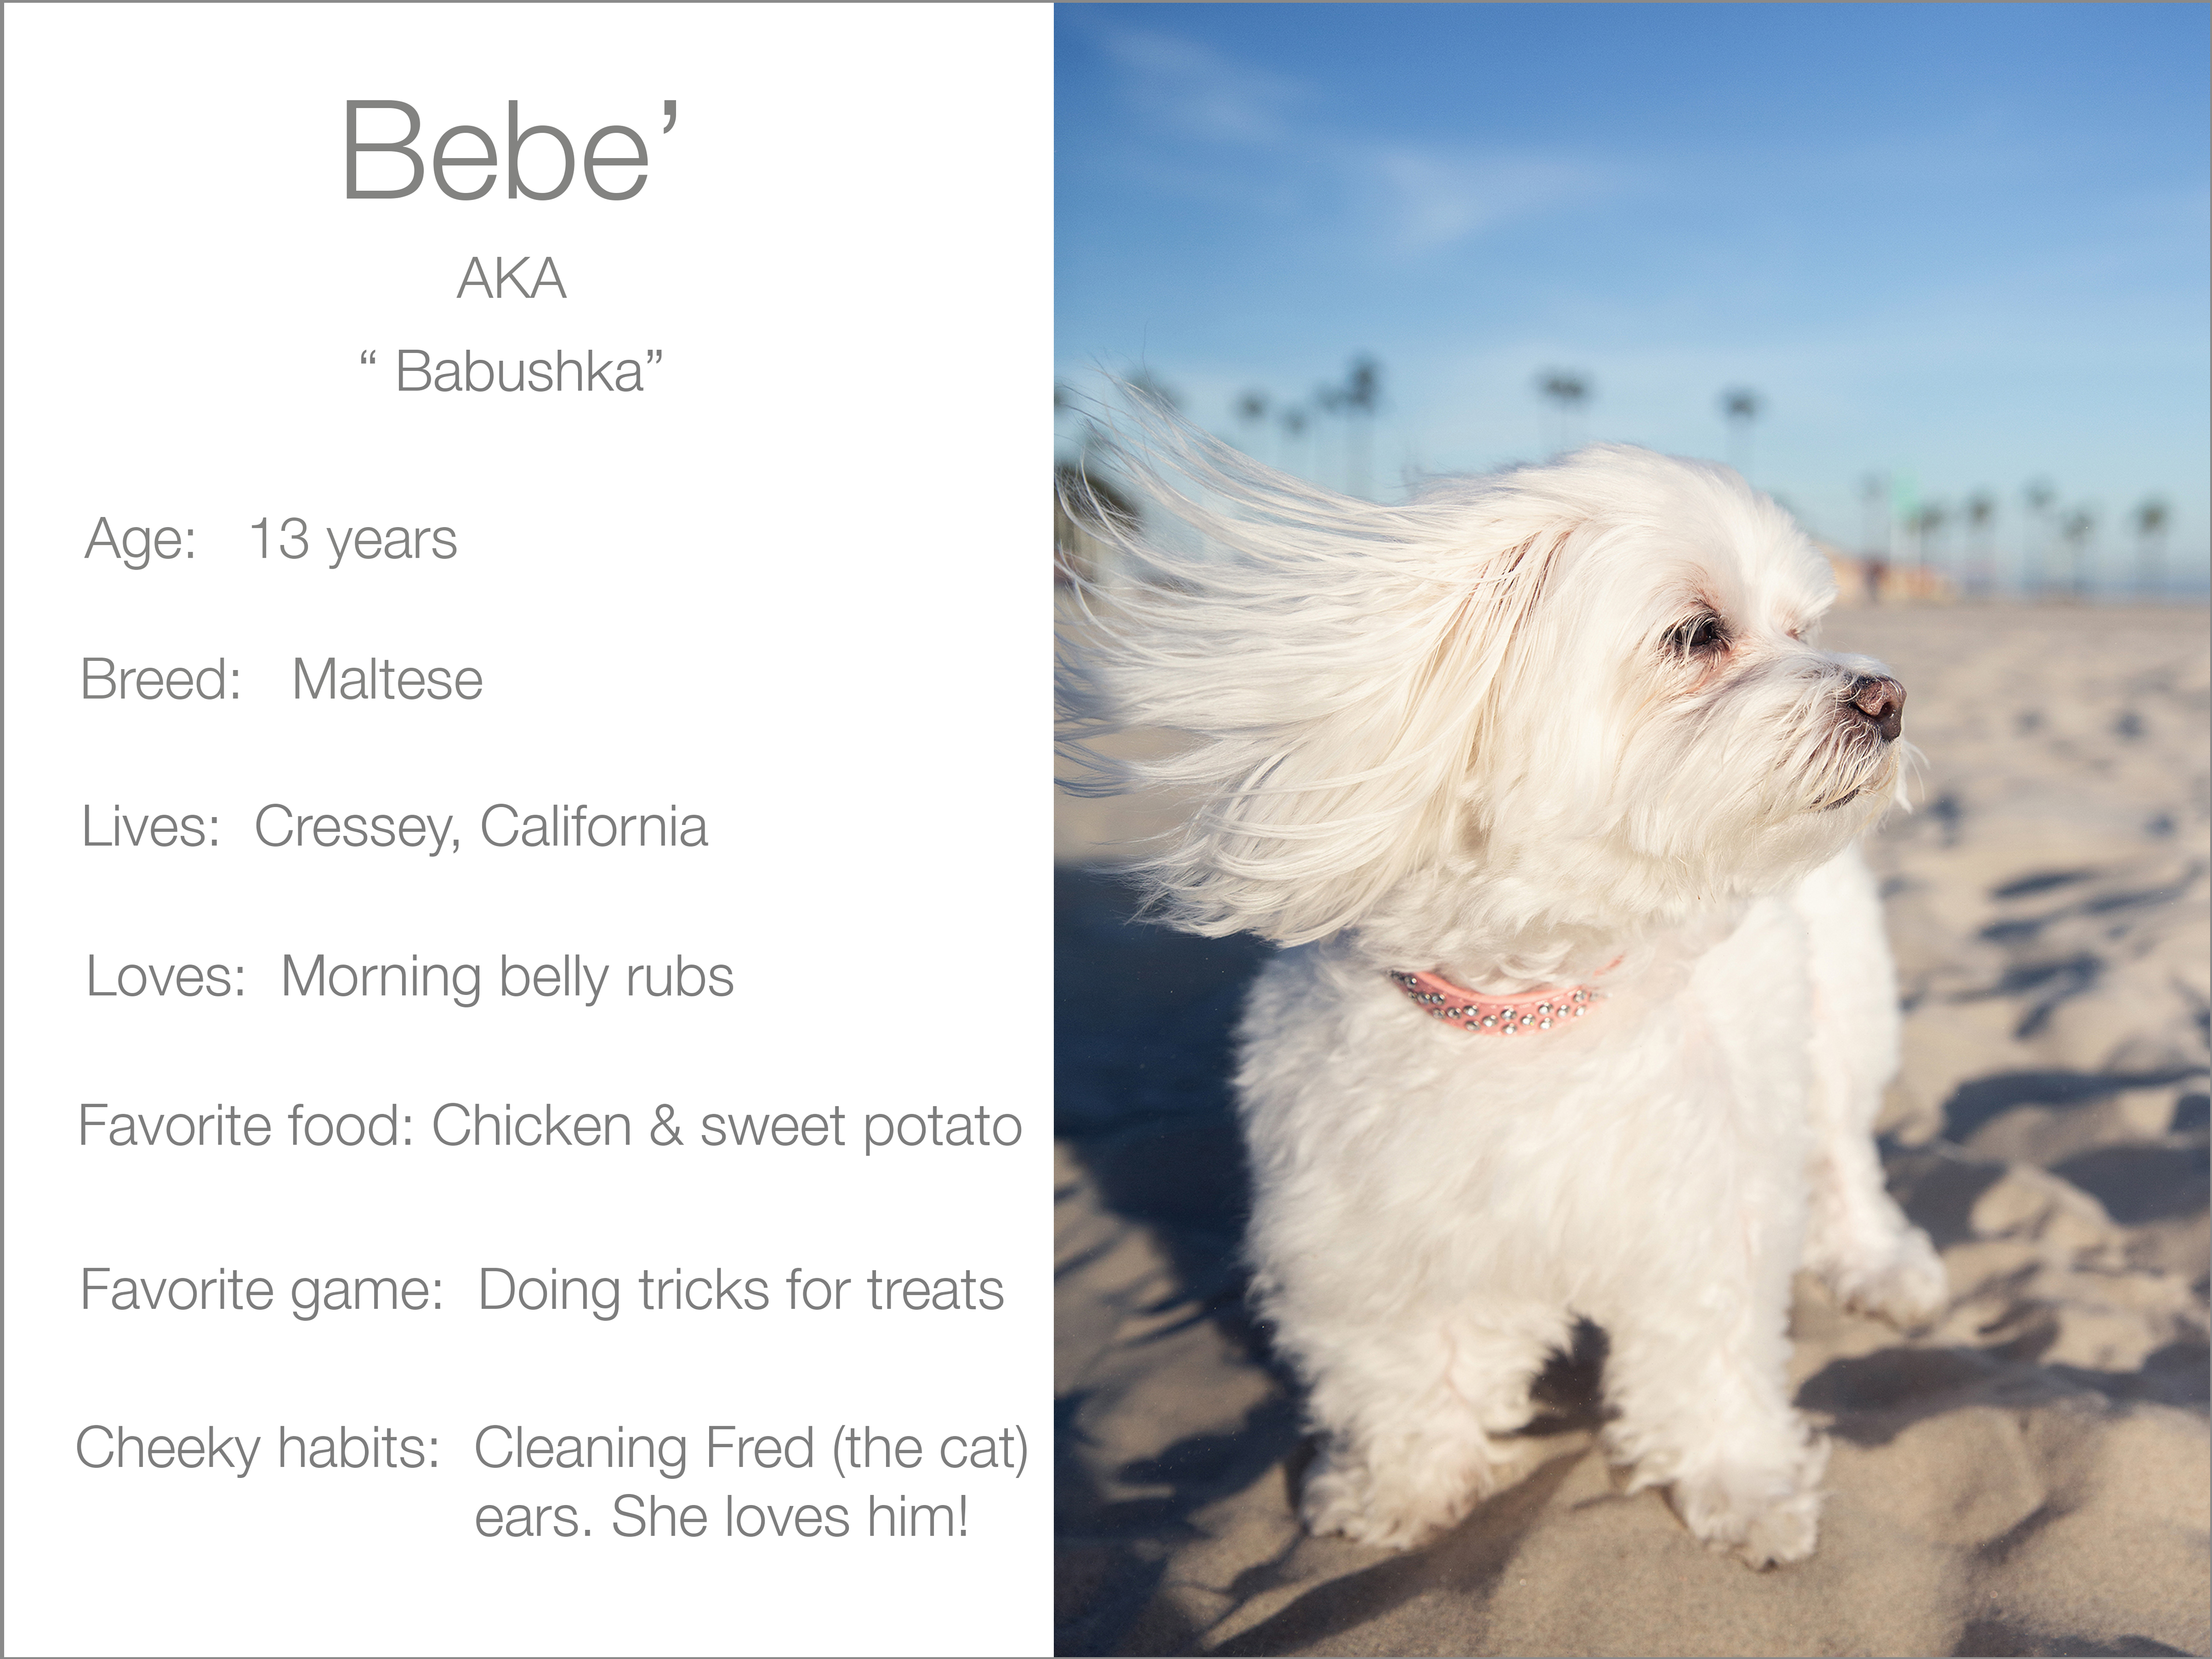 Bebe' profile dogs_and_the_city kristie_lee_photographer Charlie.jpg